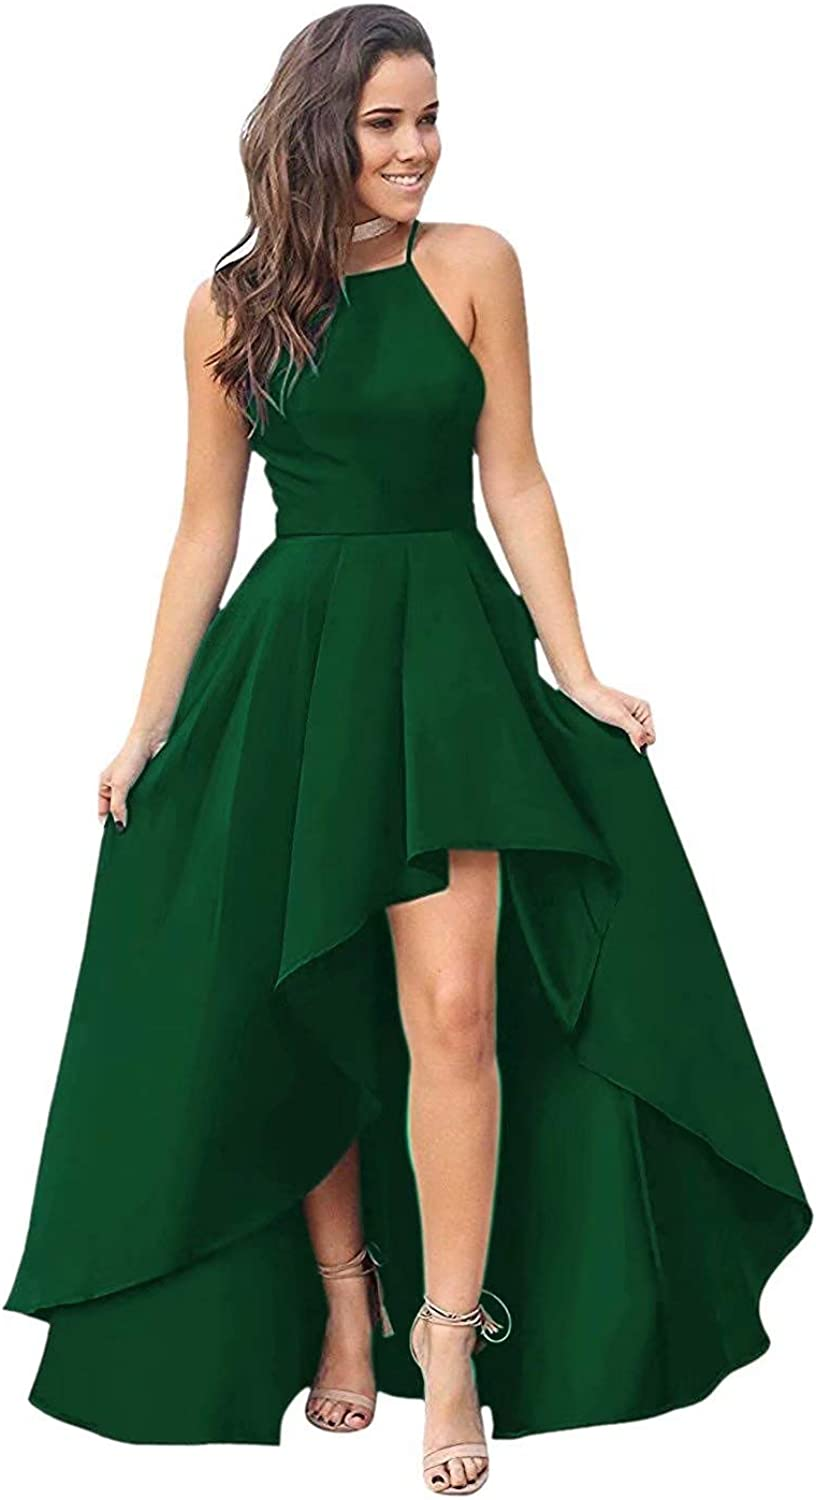 QueenBridal Women's Long Prom sale Ranking TOP20 Dress Satin High Forma Evening Low